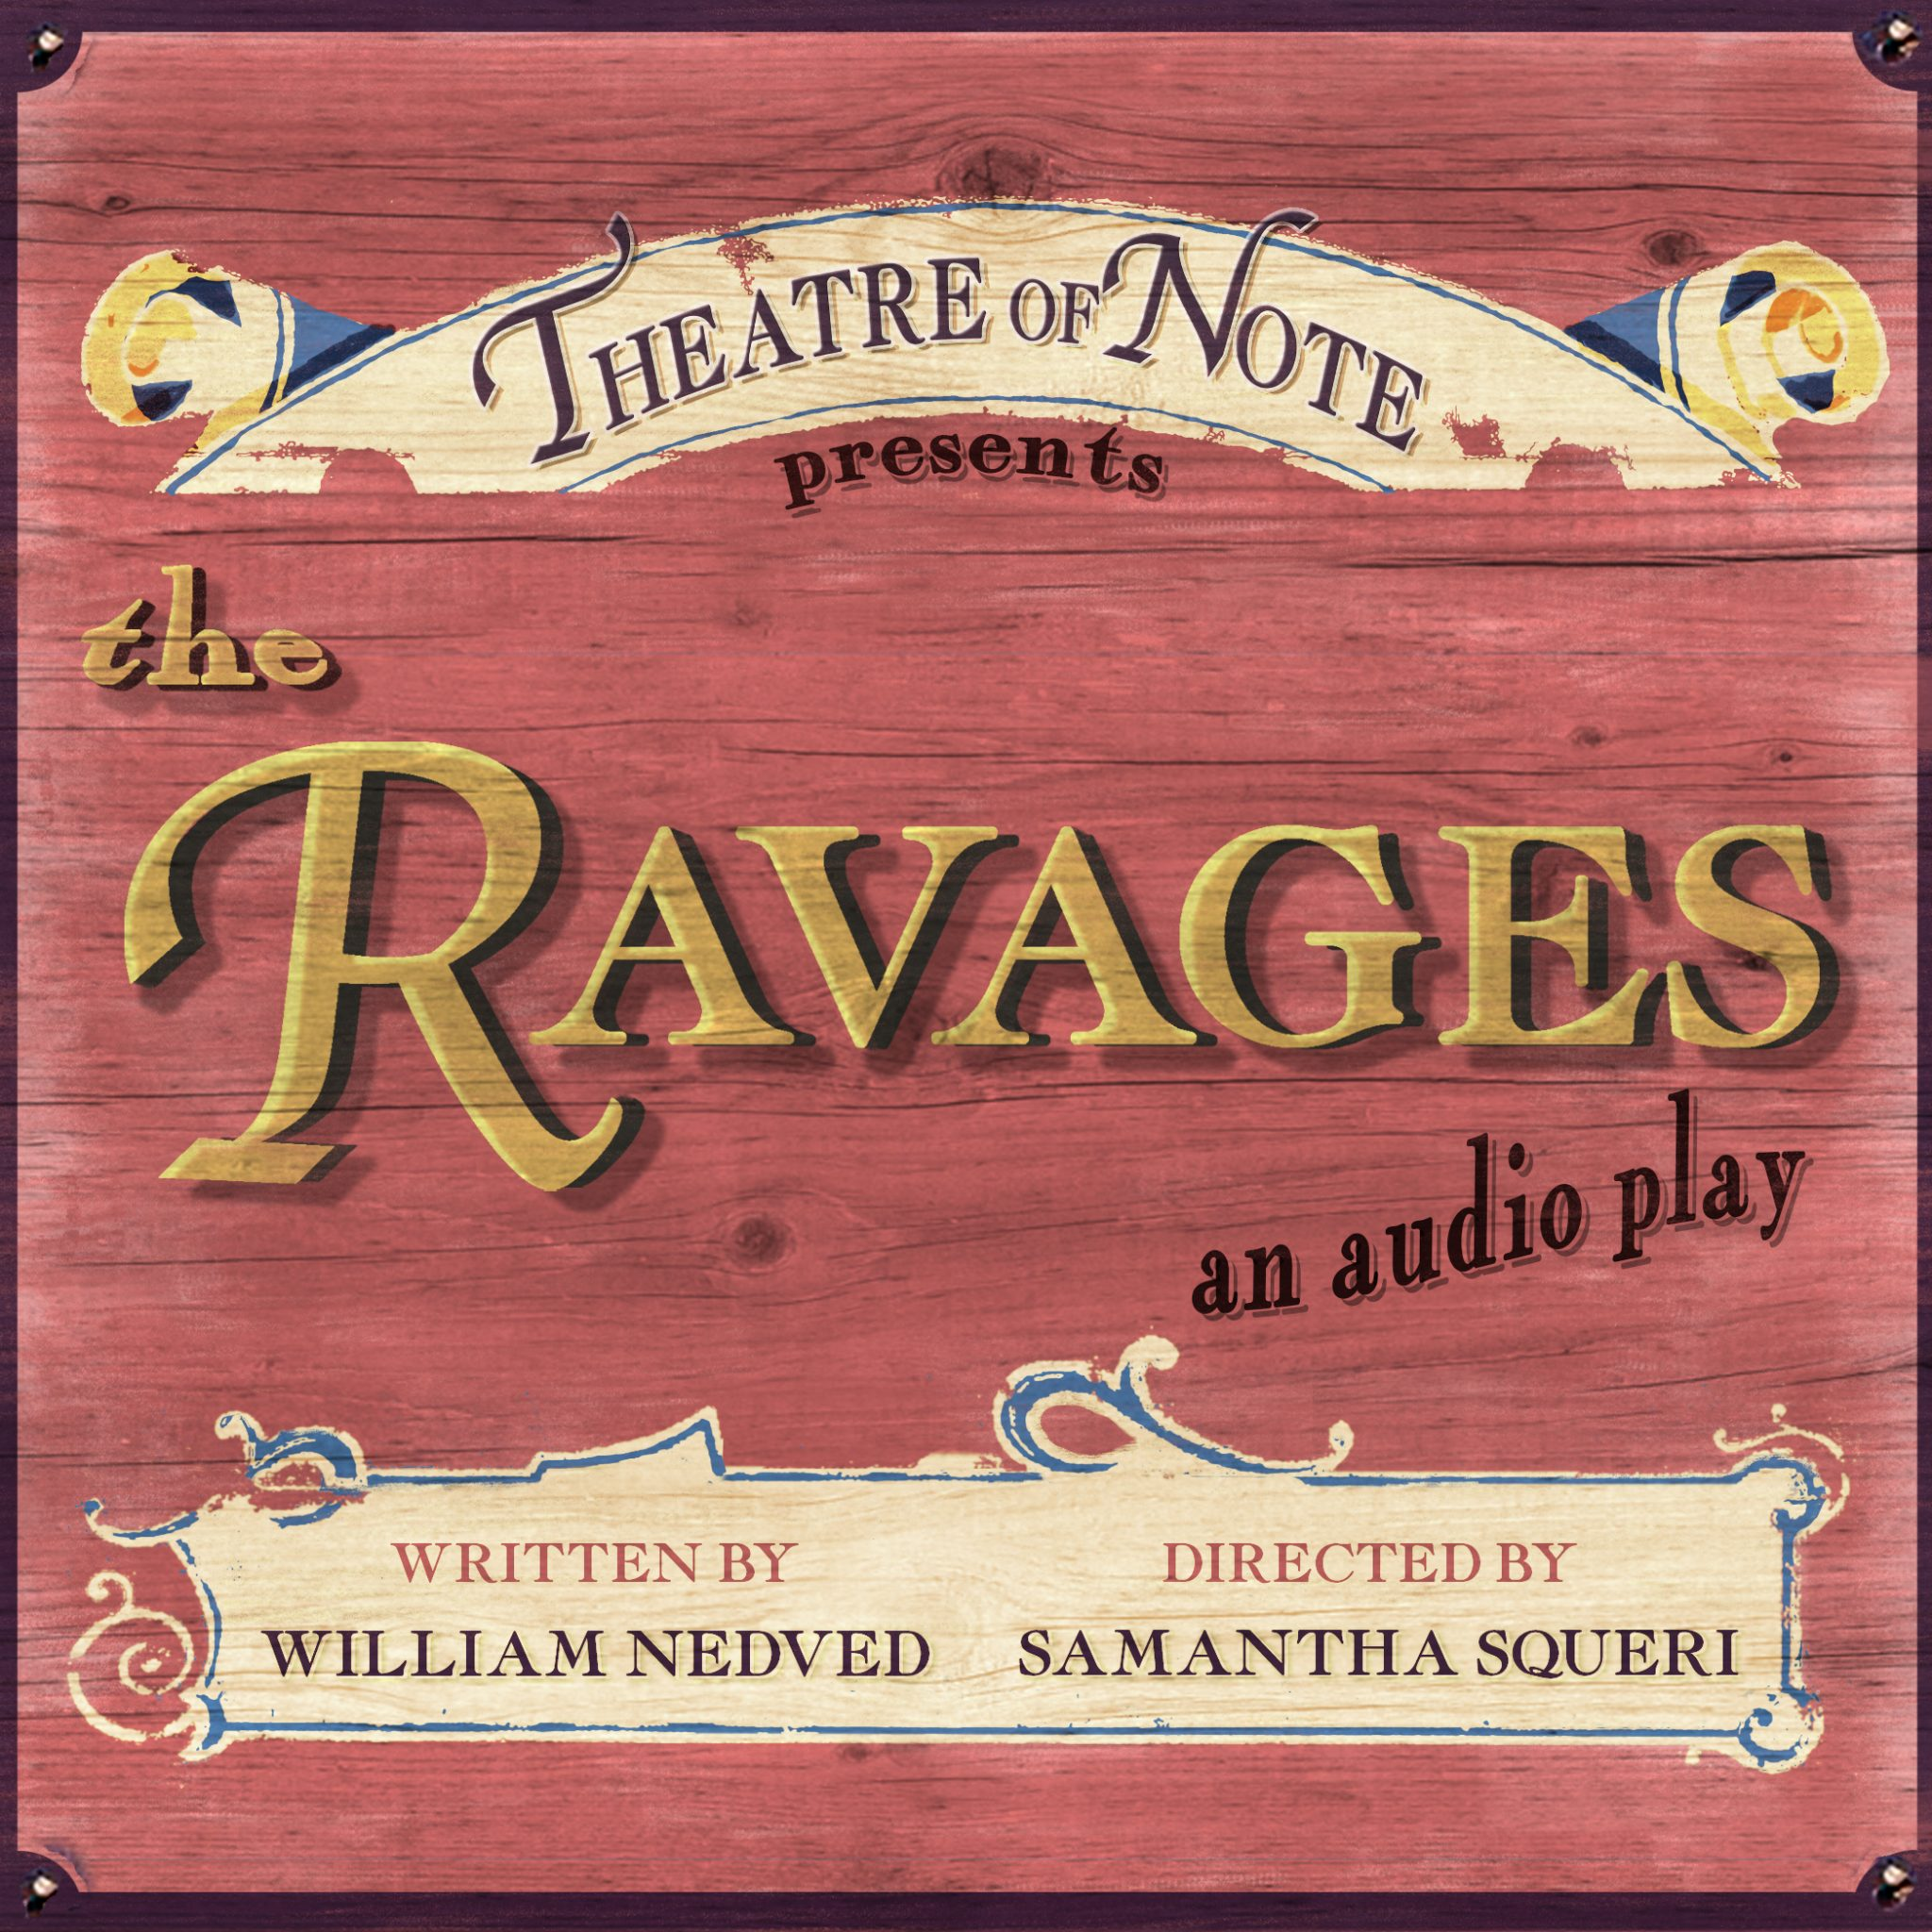 Theatre of NOTE Presents